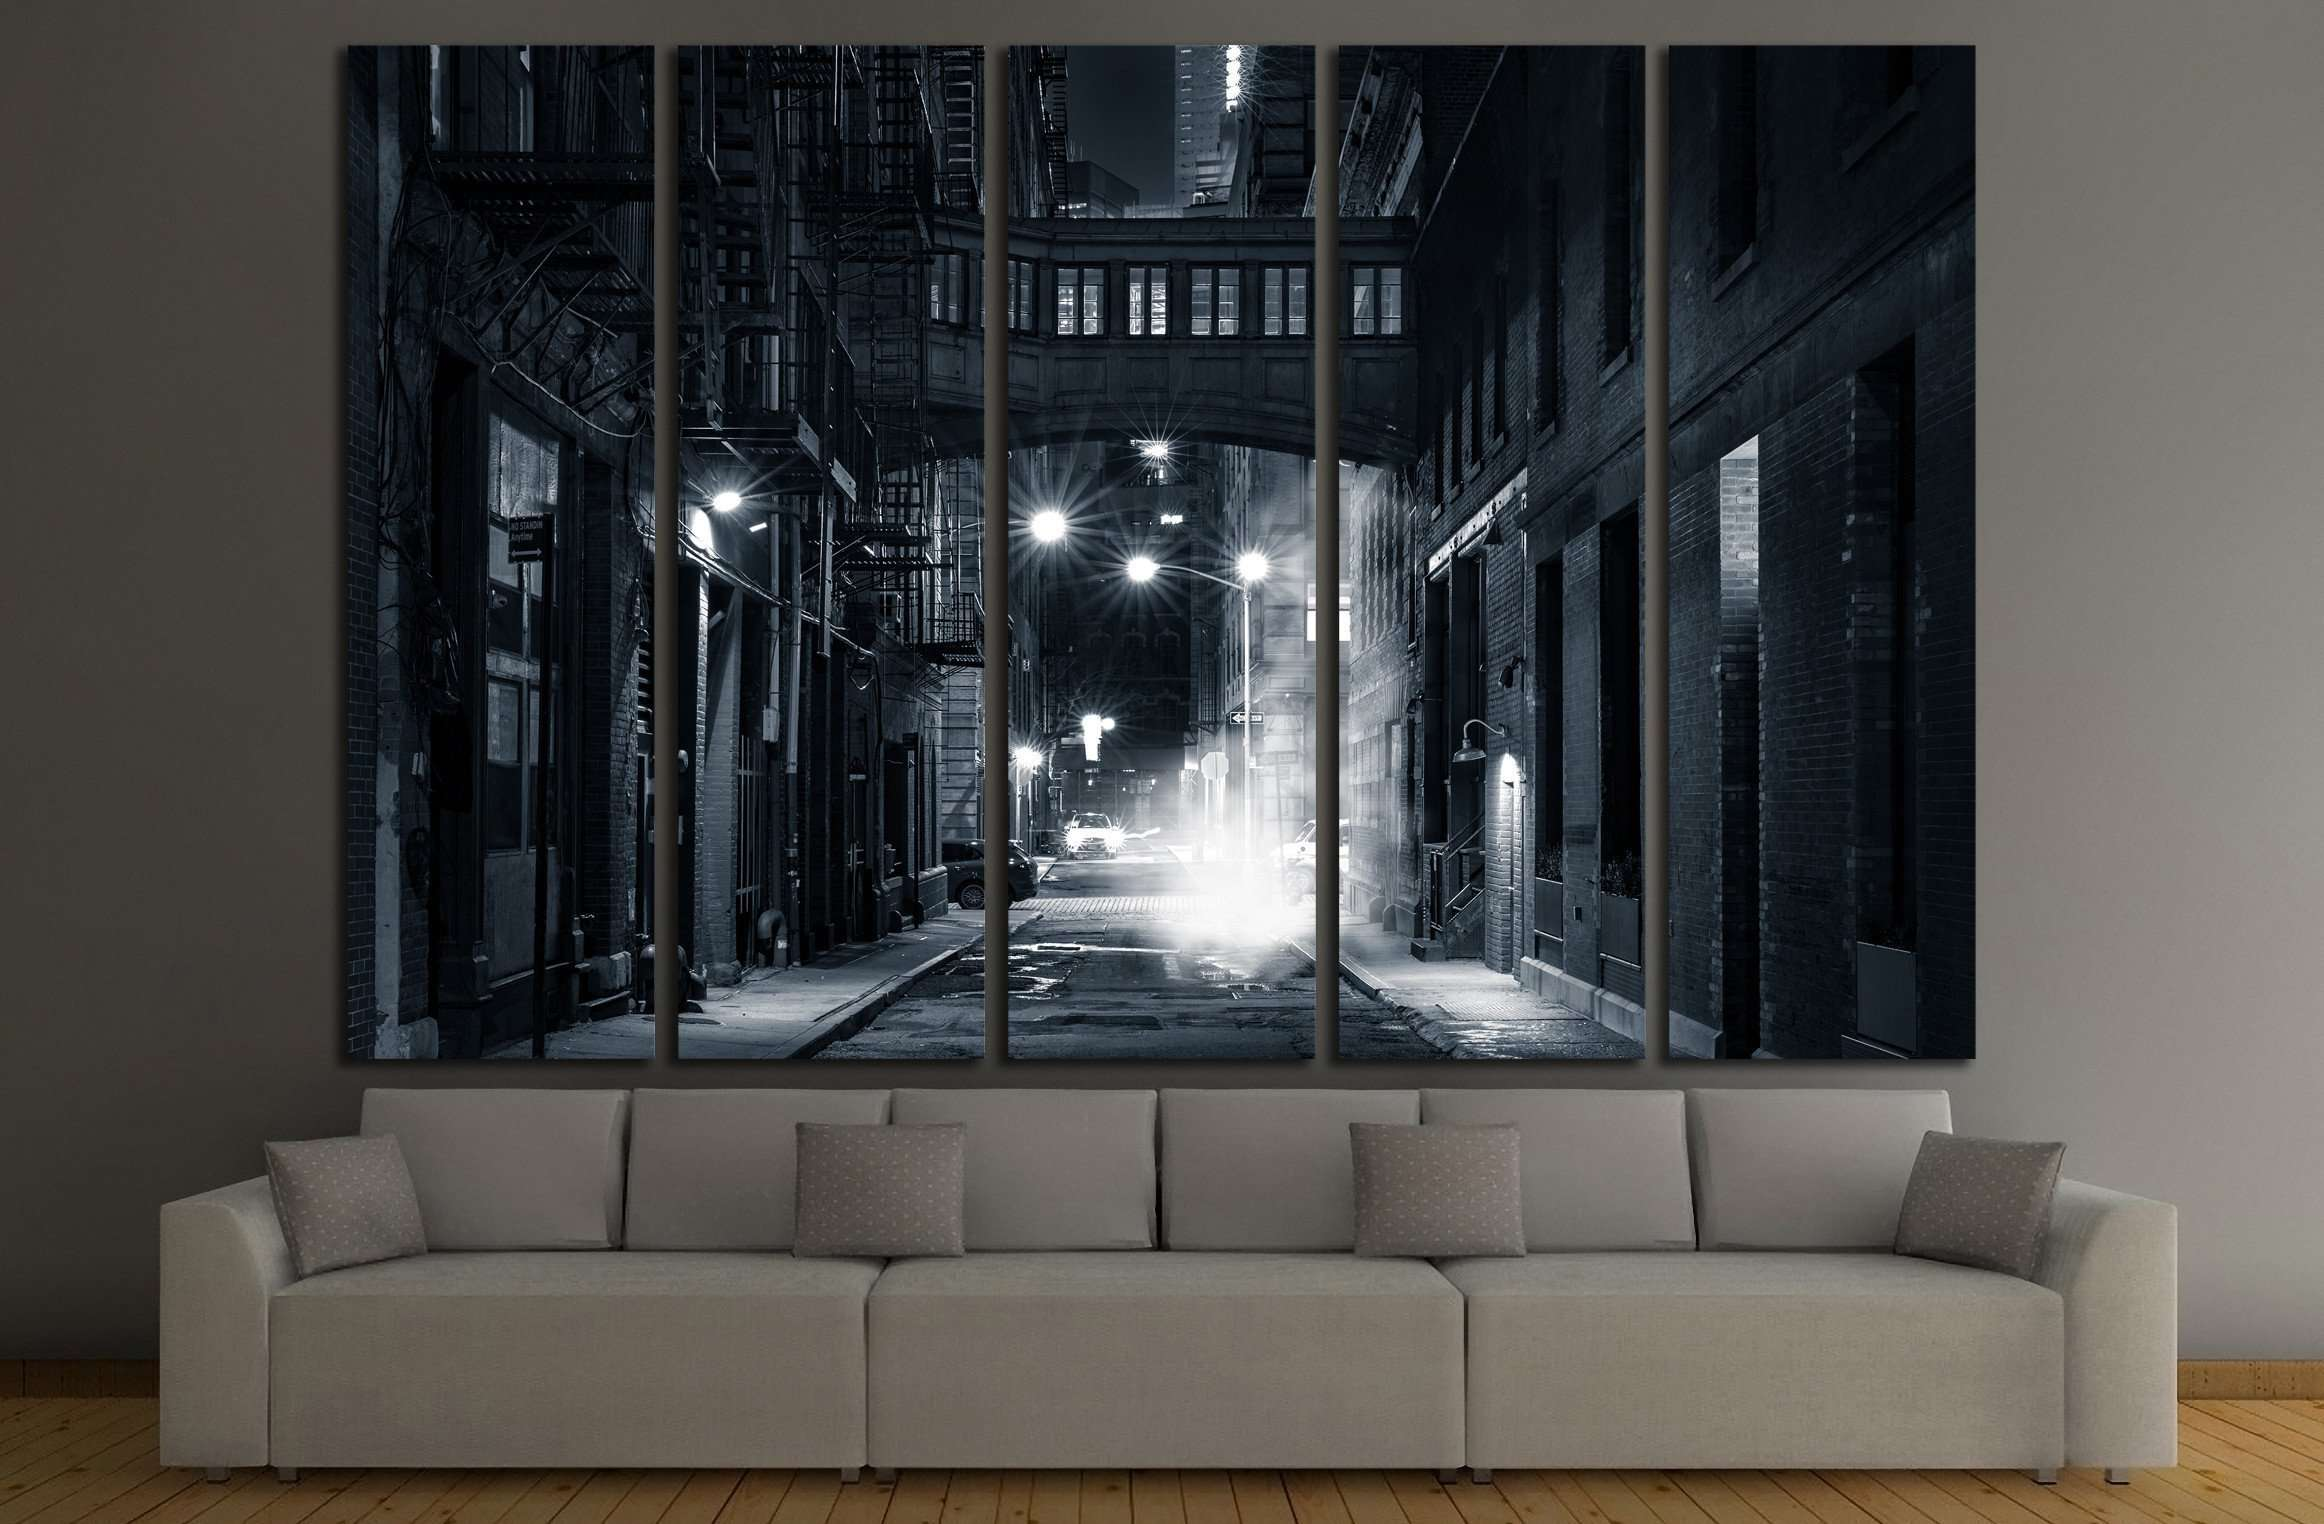 Staple street skybridge by night, in Tribeca, New York City №2197 Ready to Hang Canvas Print